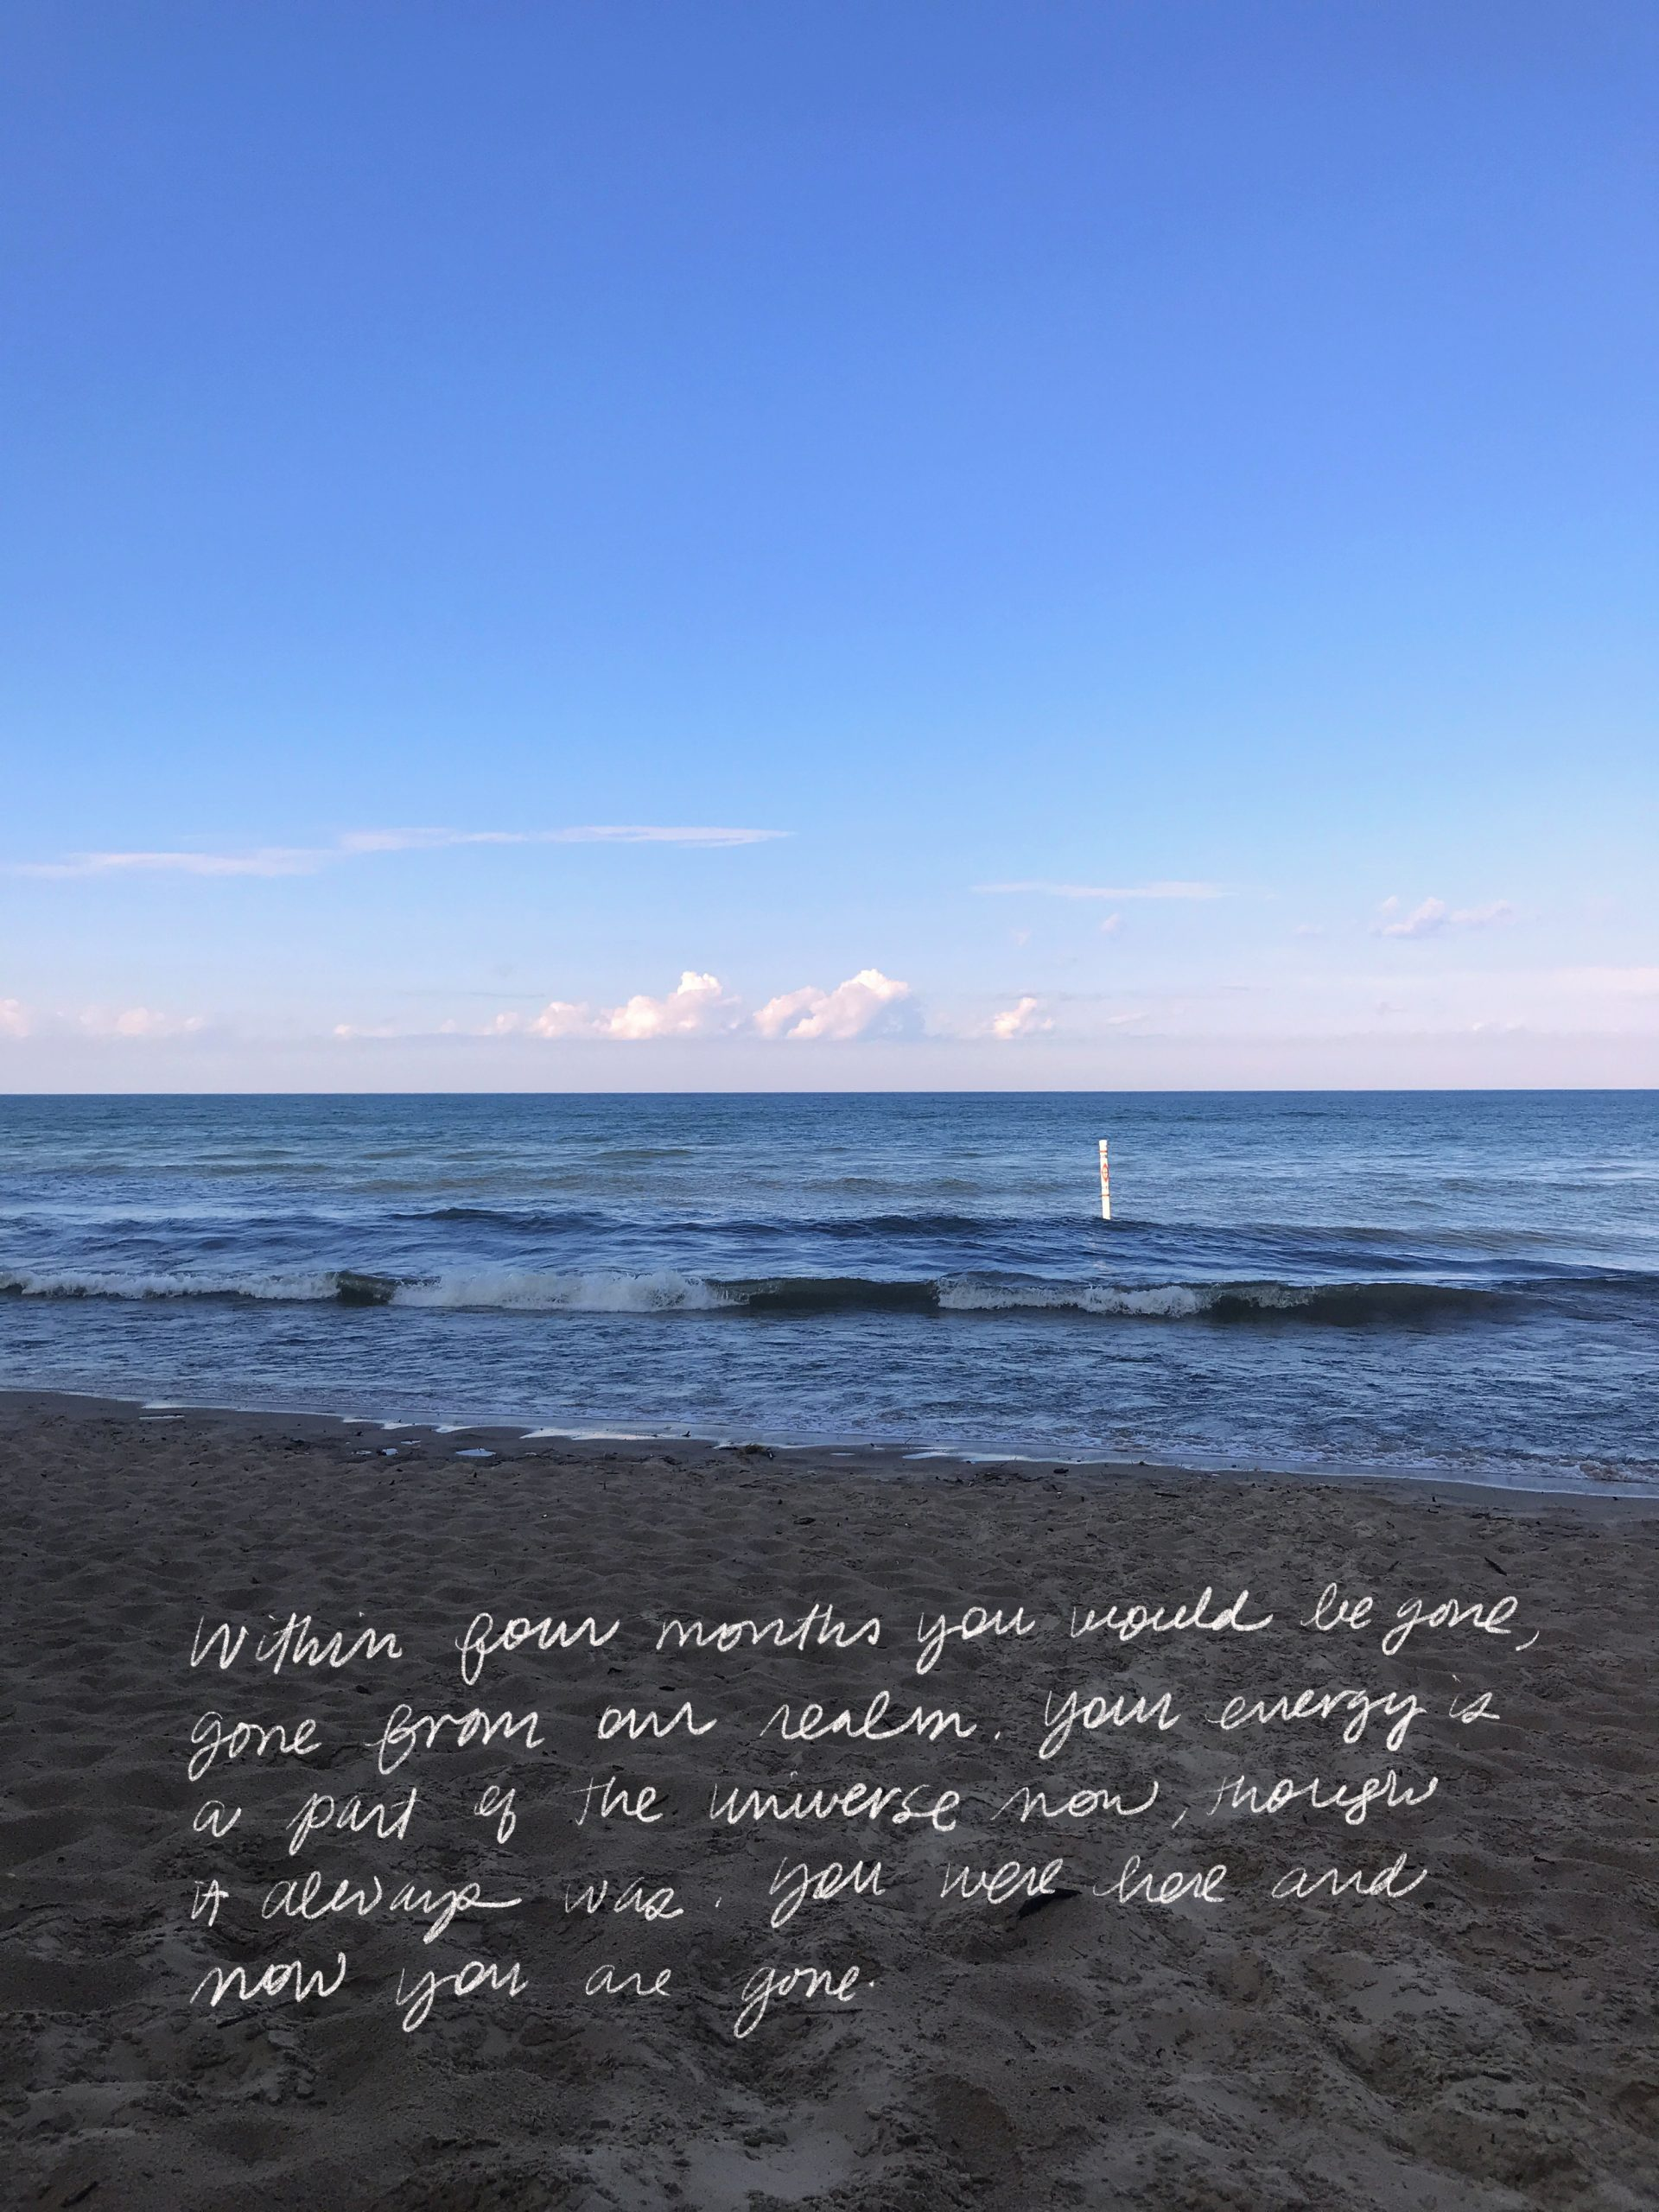 Image of photograph of Lake Michigan, buoy and beach with handwritten text.